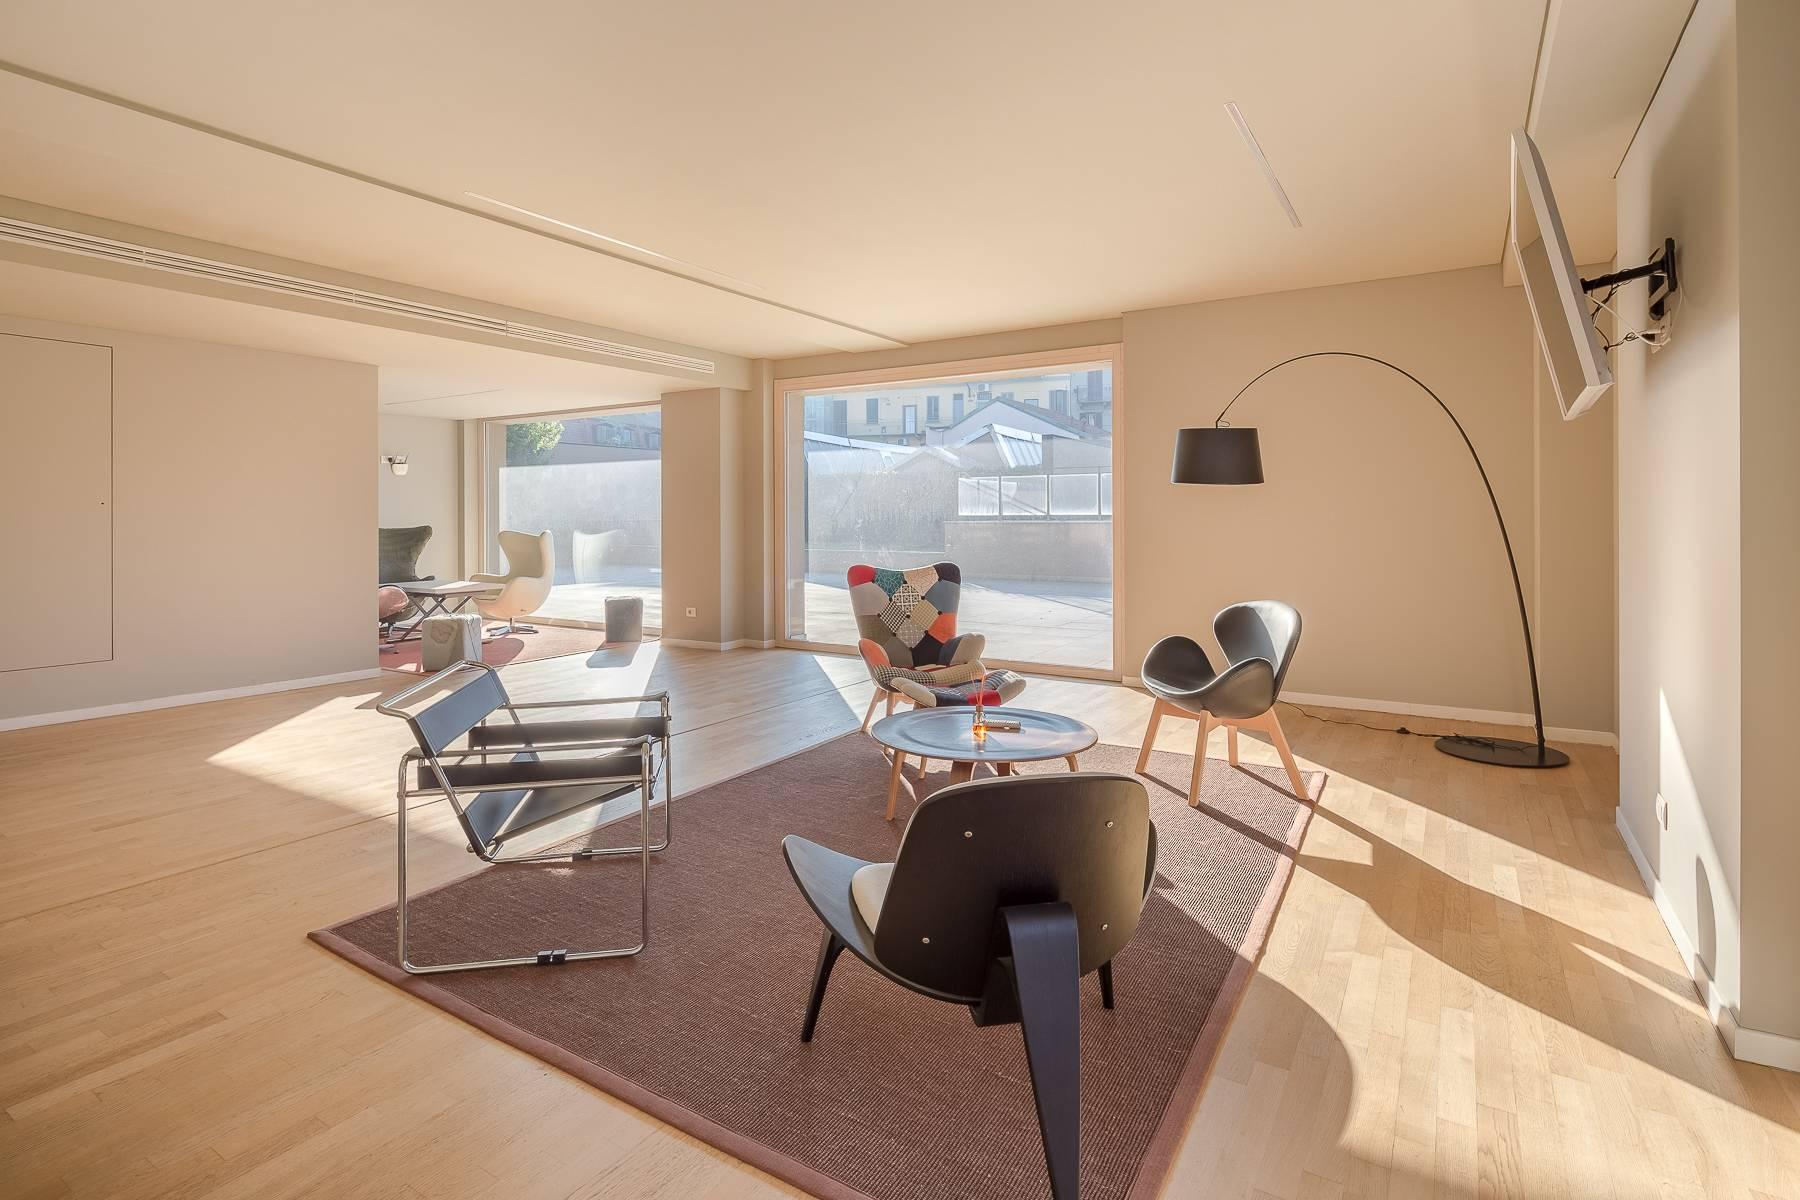 New two-room apartment with terrace in Giax Tower - 15